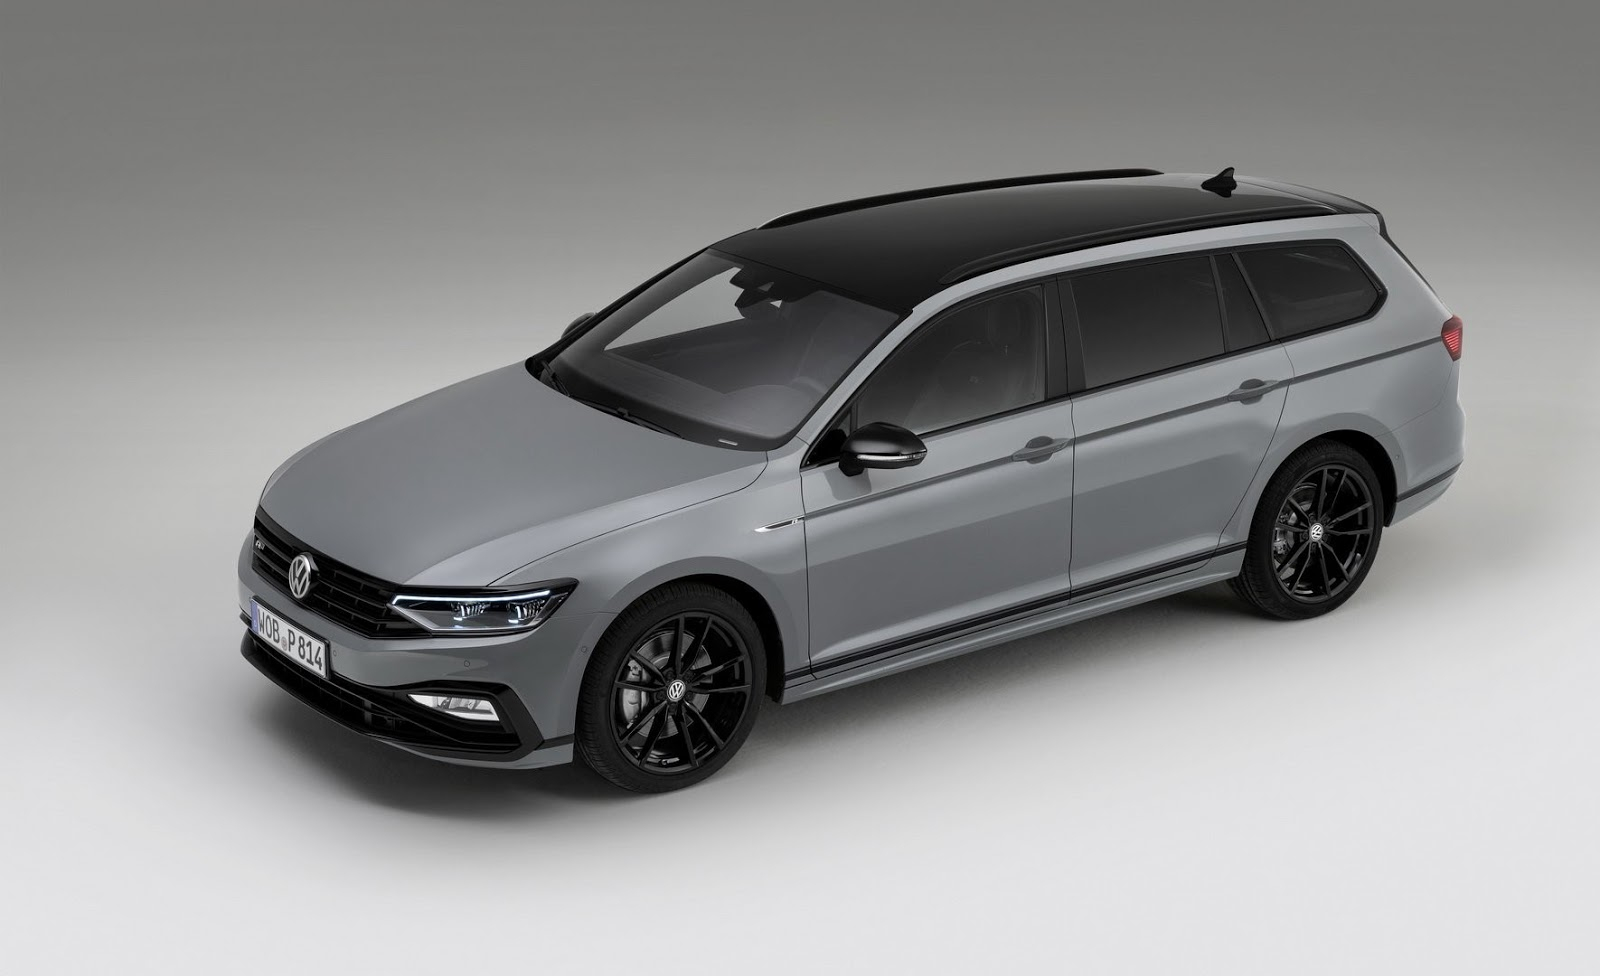 2020 Vw Passat Variant R-Line Edition - Ms+ Blog with 2021 Vw Passat Variant R-Line, Color Option, Specification